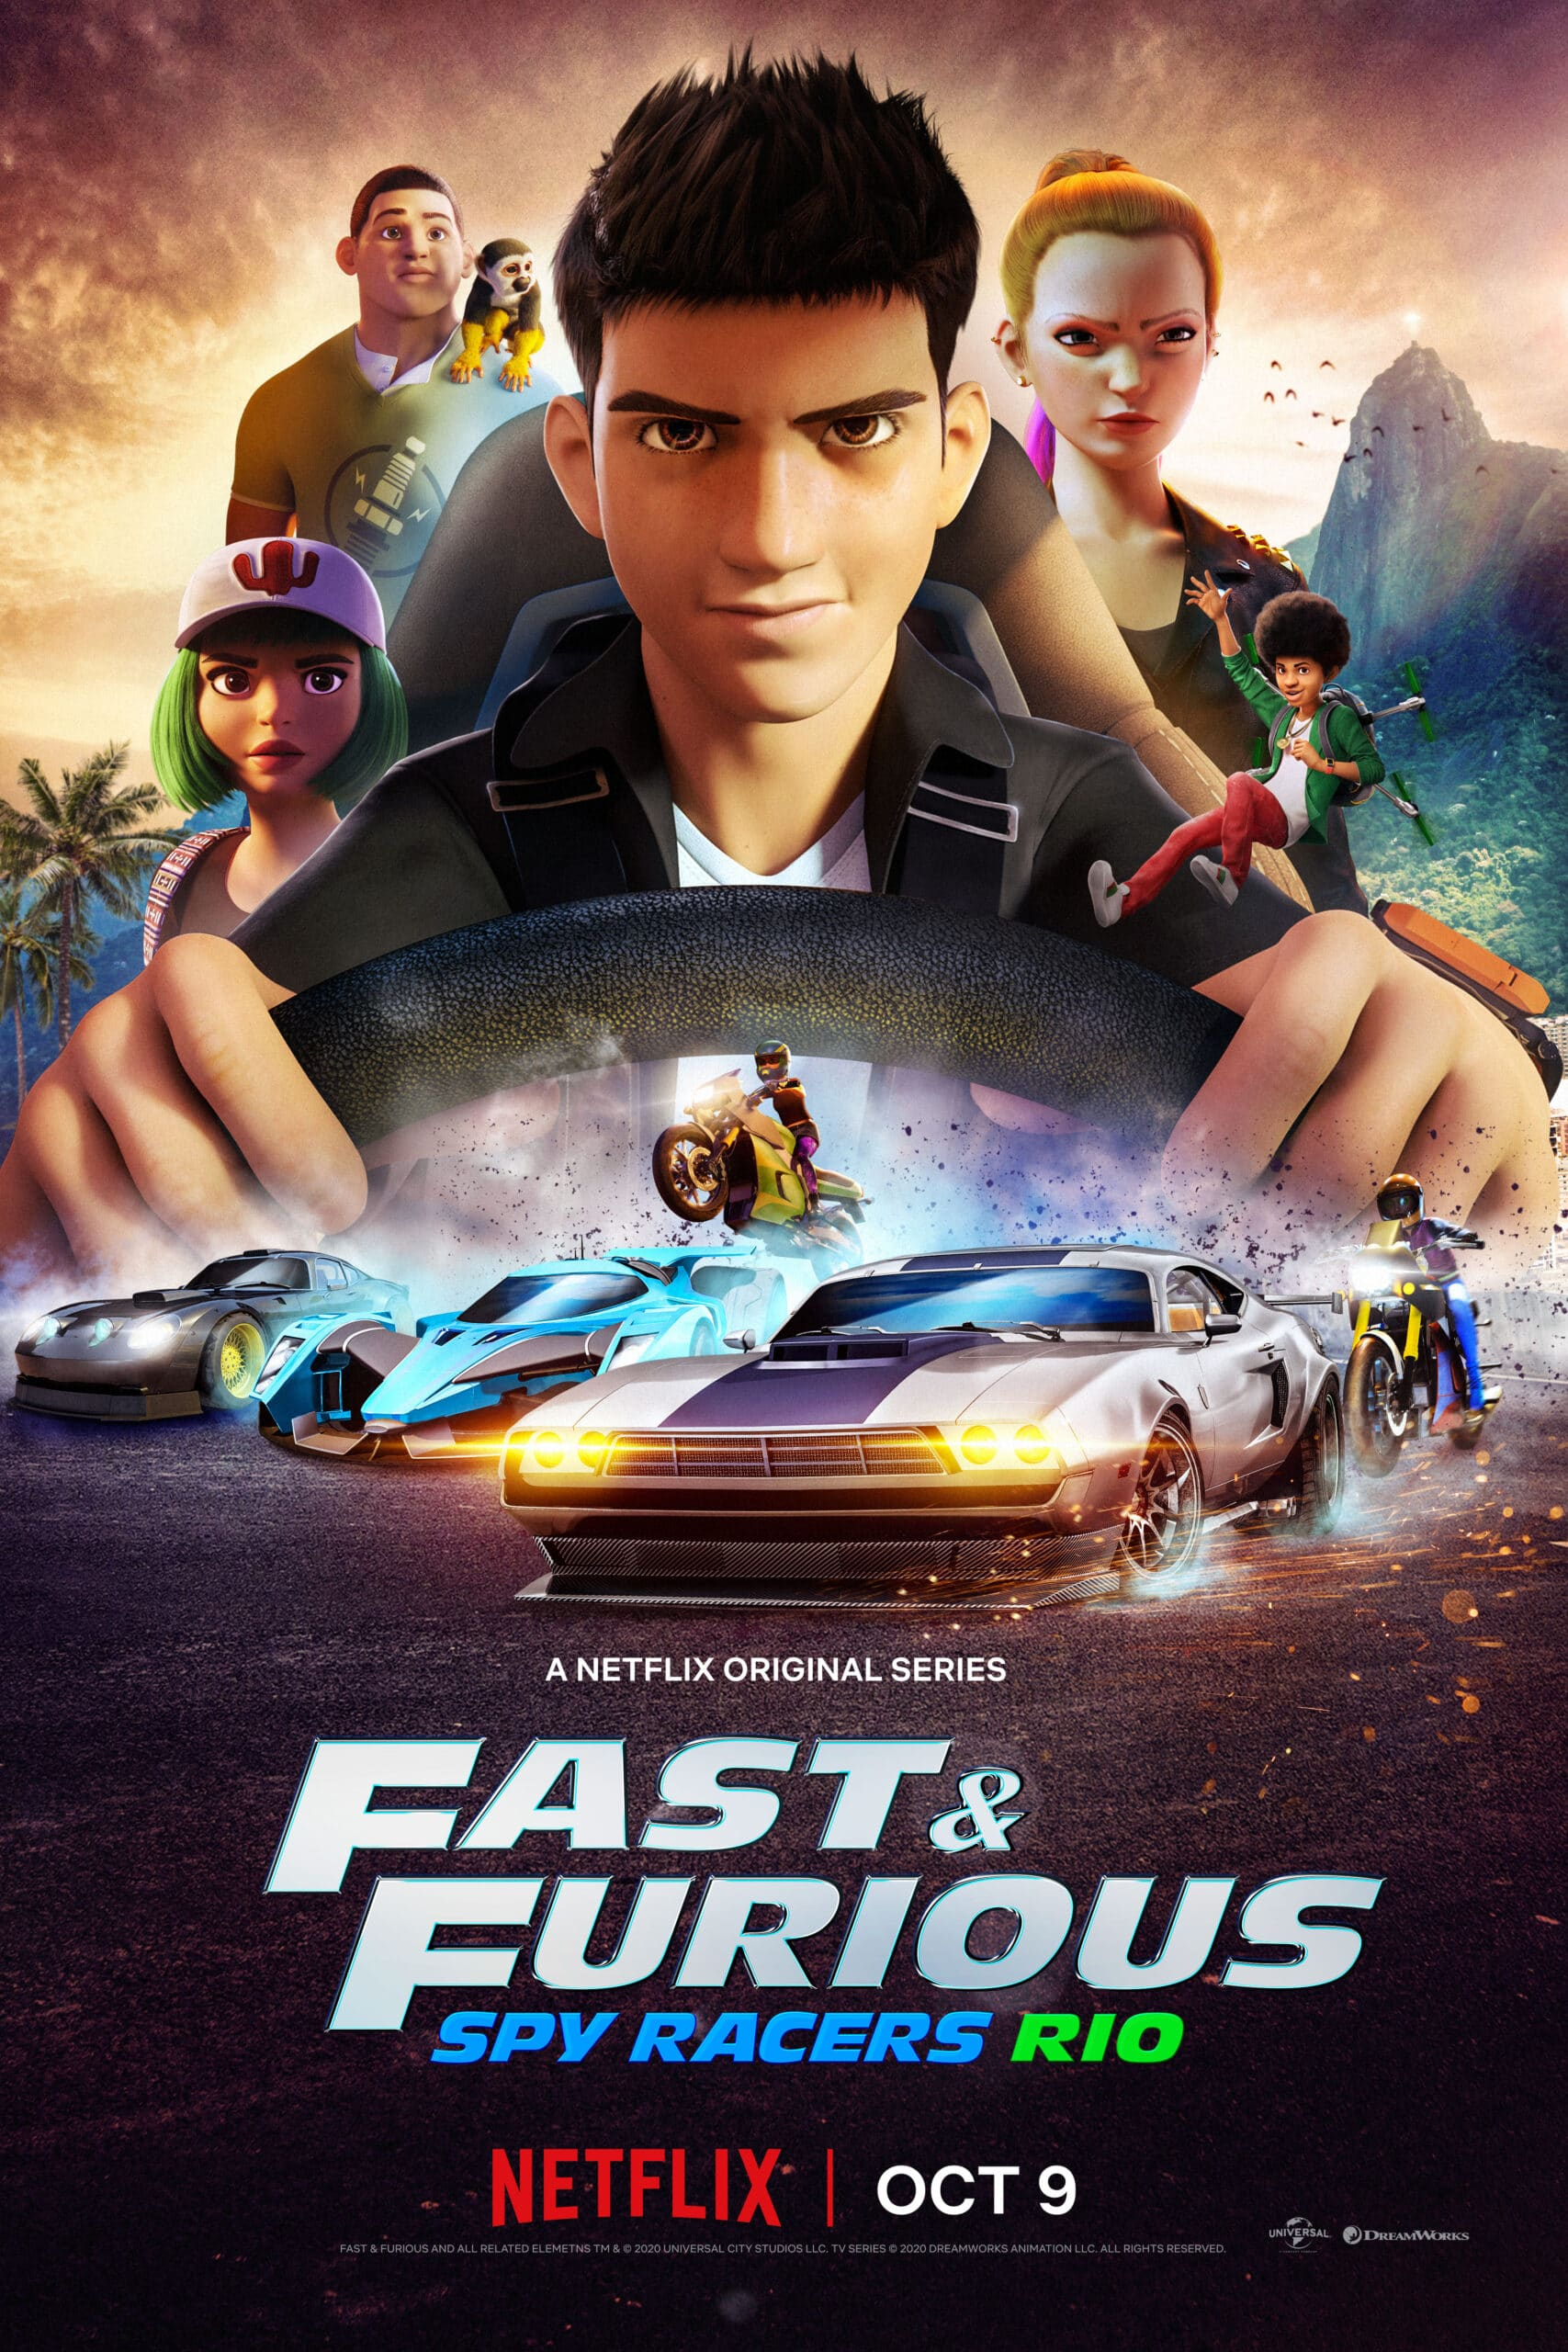 Fast & Furious: Spy Racers. Universal and DreamWorks Animation have released the second season trailer for the hit Netflix Original series Fast & Furious: Spy Racers, which finds the team heading to Rio de Janeiro on October 9. Check out the full trailer below, as well as more information about what to expect in Season 2